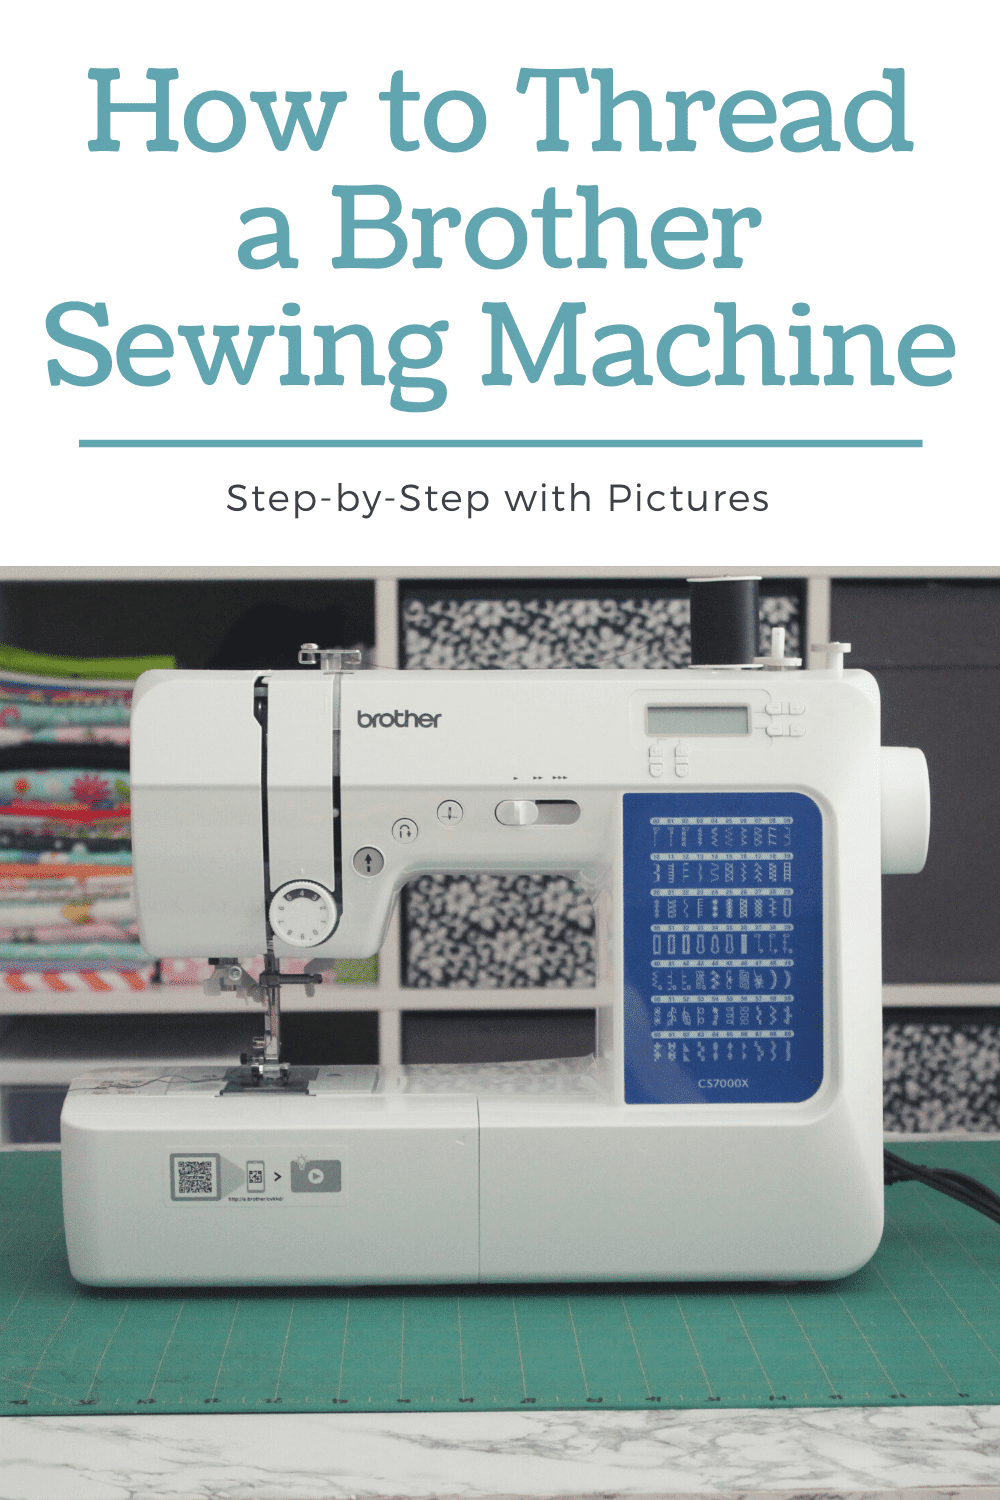 step-by-step thread a brother sewing machine